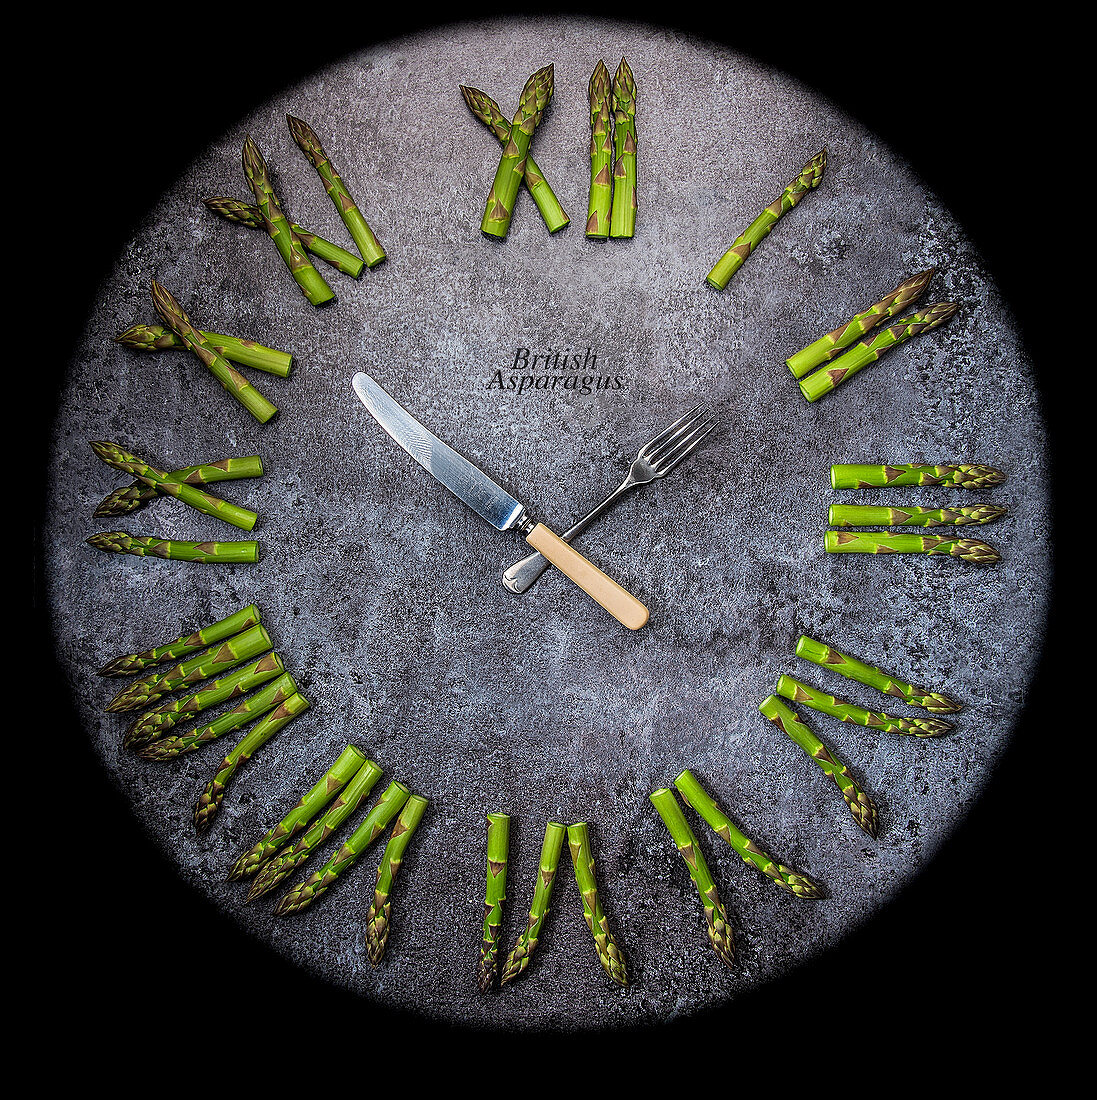 A clock with asparagus Roman numerals and cutlery hands